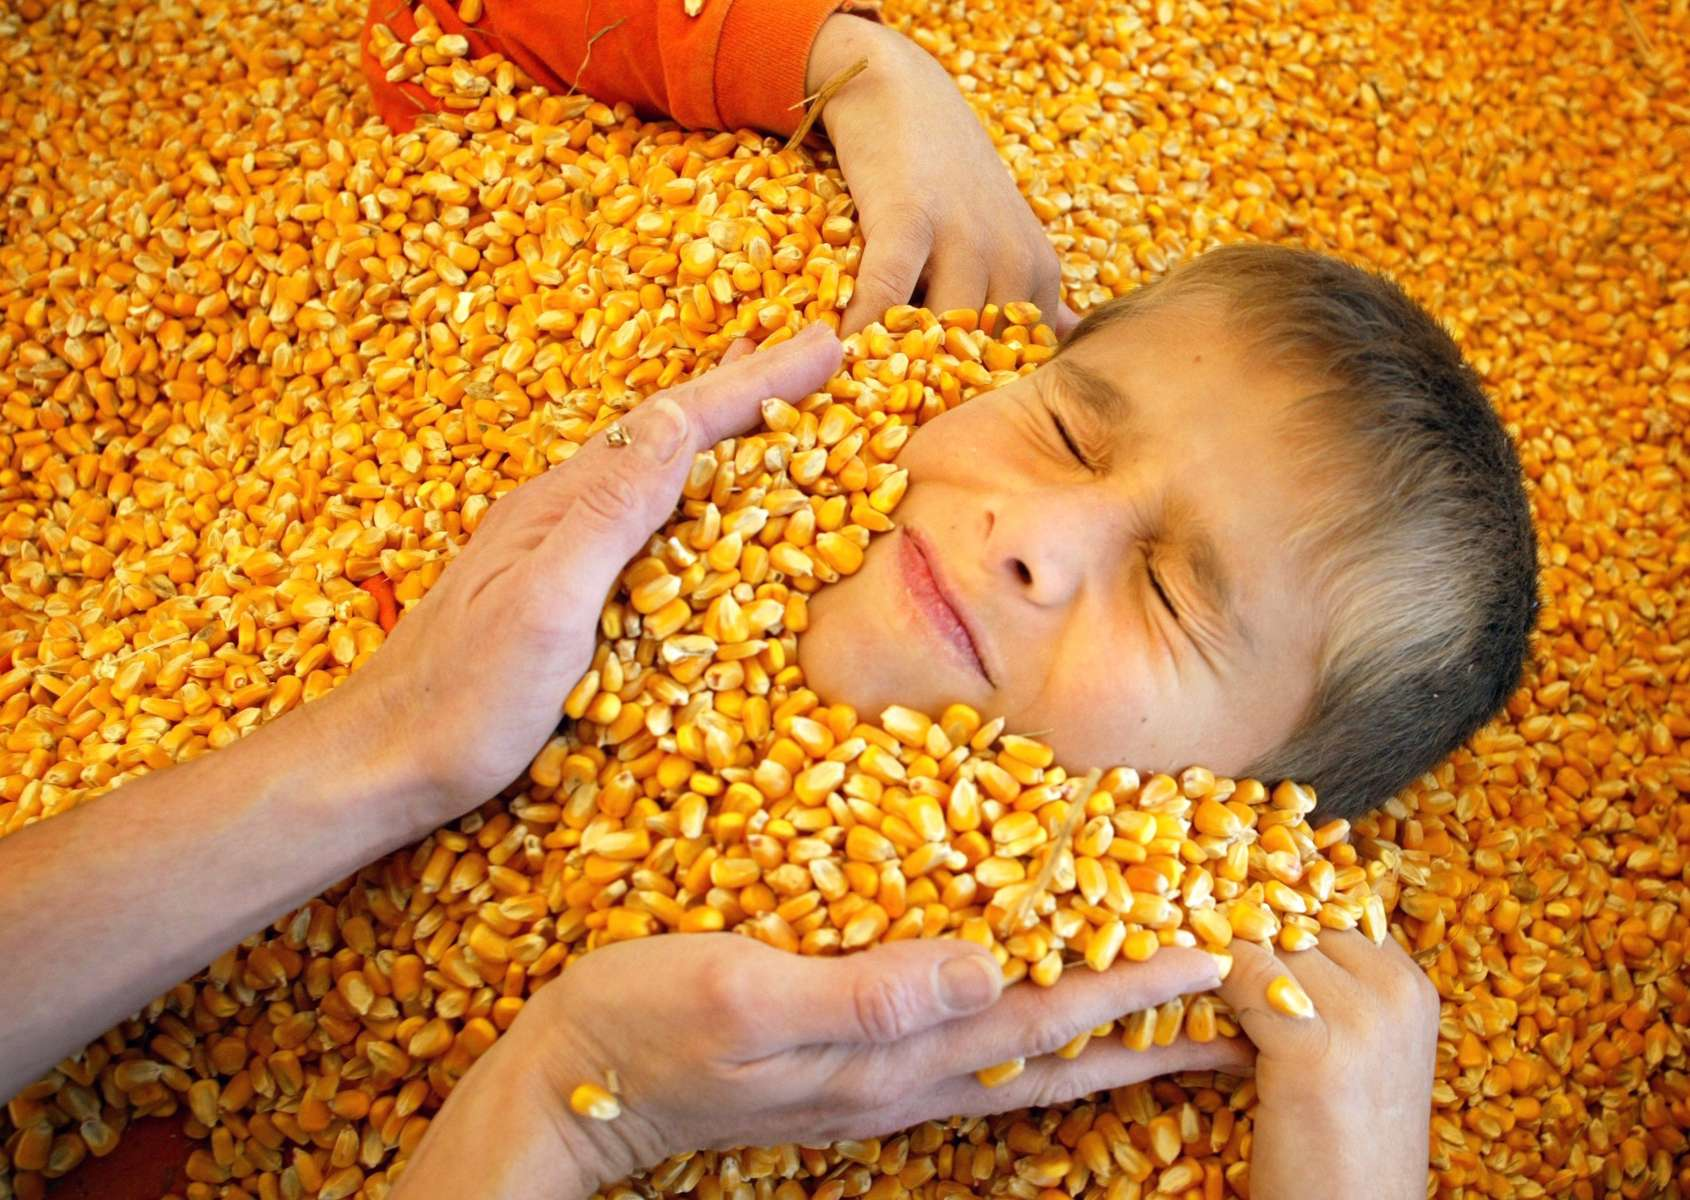 Bethalto West Elementary School fourth grader Chris Williams, 9, is buried in the {quote}Corn Crib{quote} play area at the Great Godfrey Maze during a school field trip.